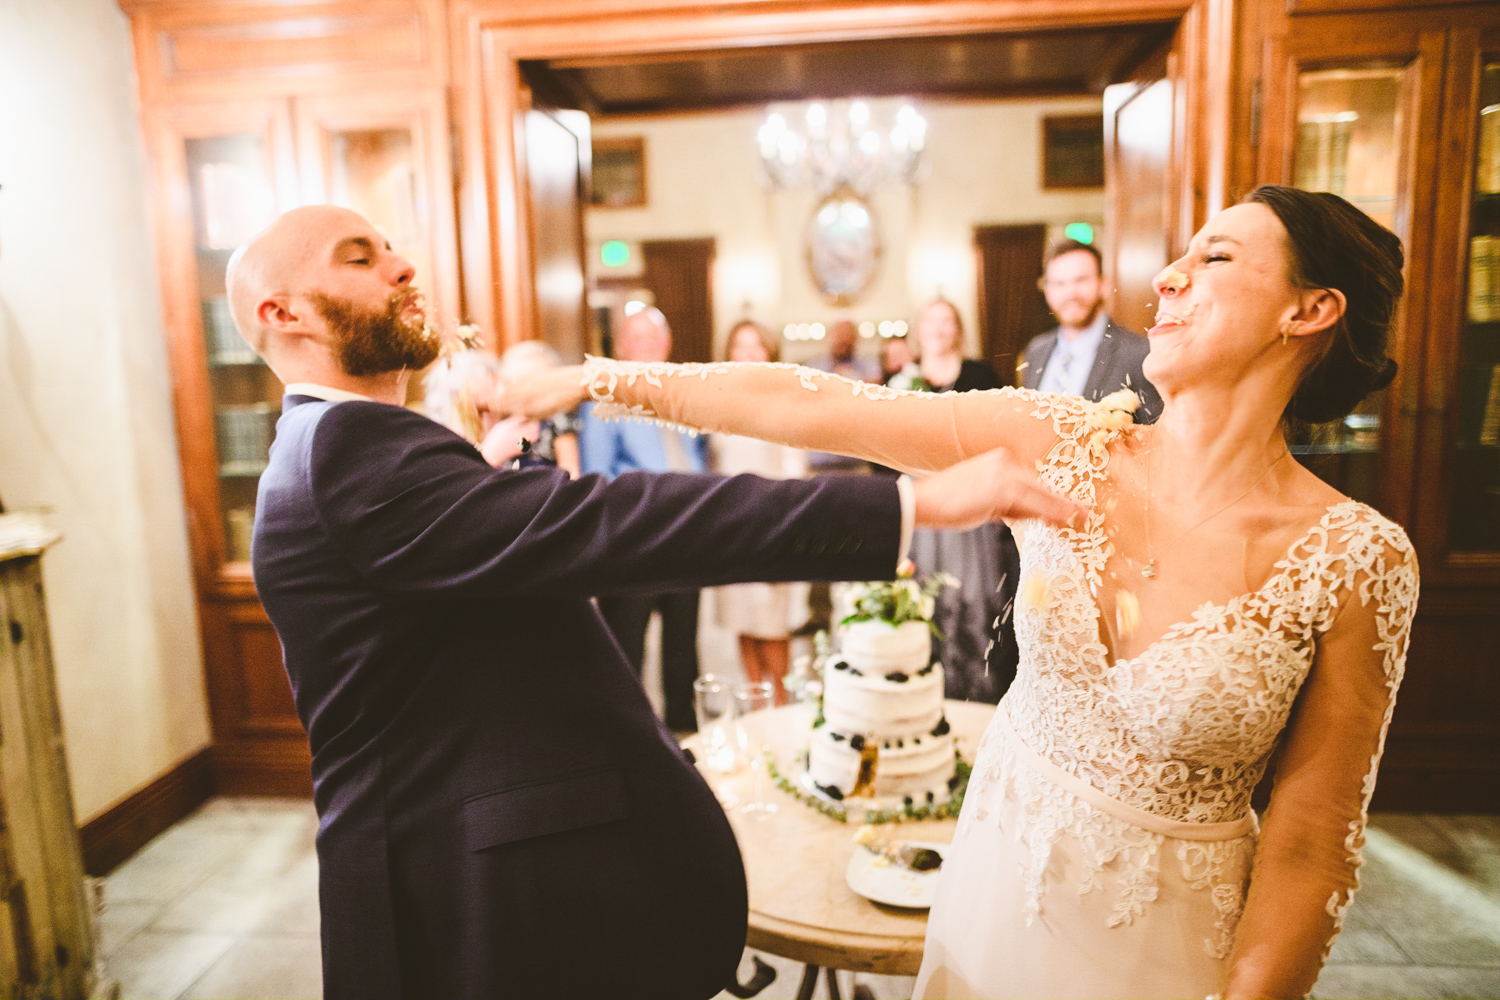 035 - bride and groom smash cake in each others faces.jpg